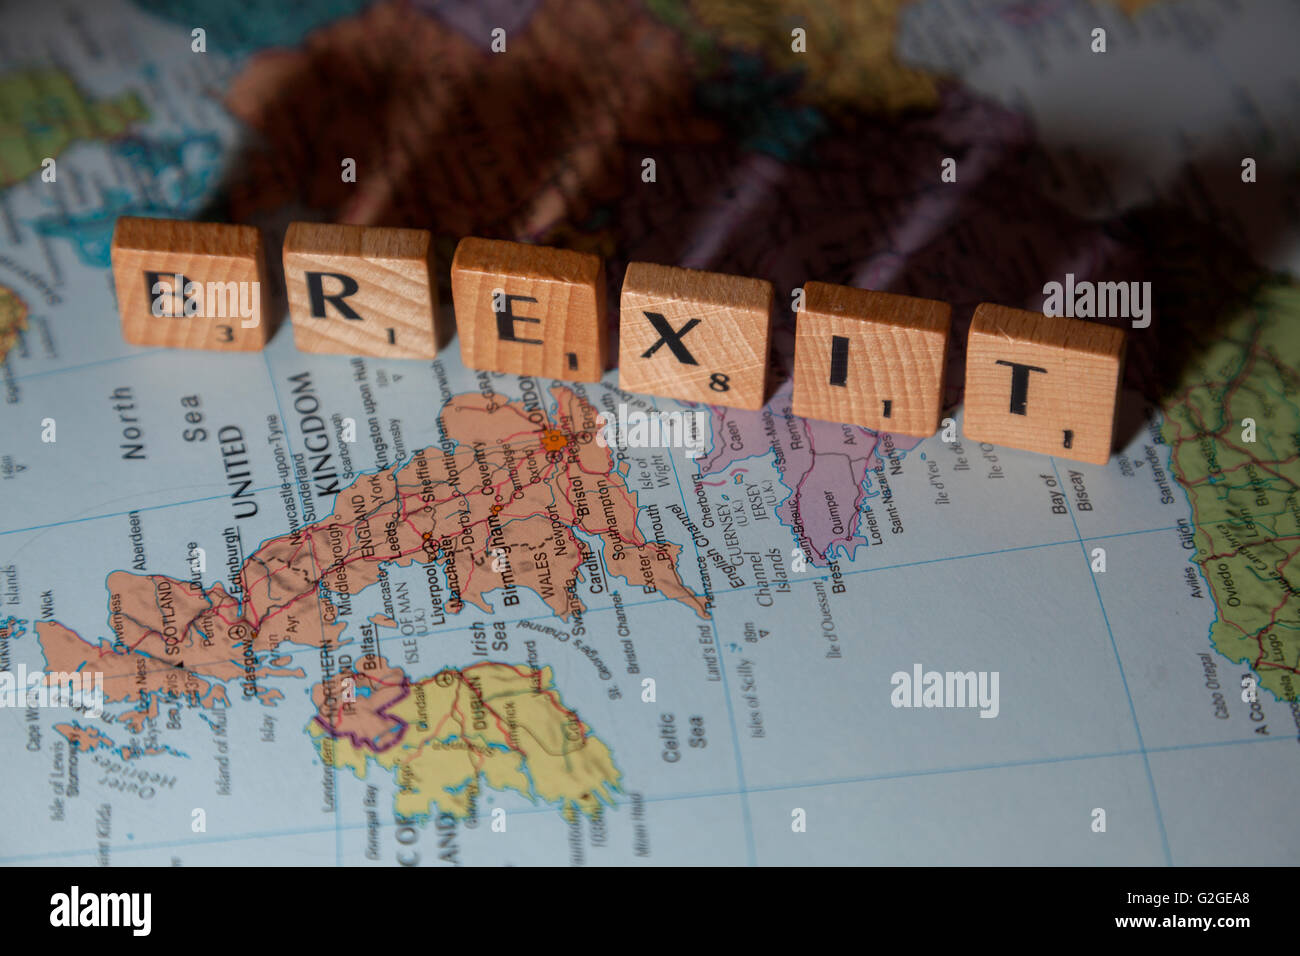 Brexit spelled out on a map of Europe - Stock Image